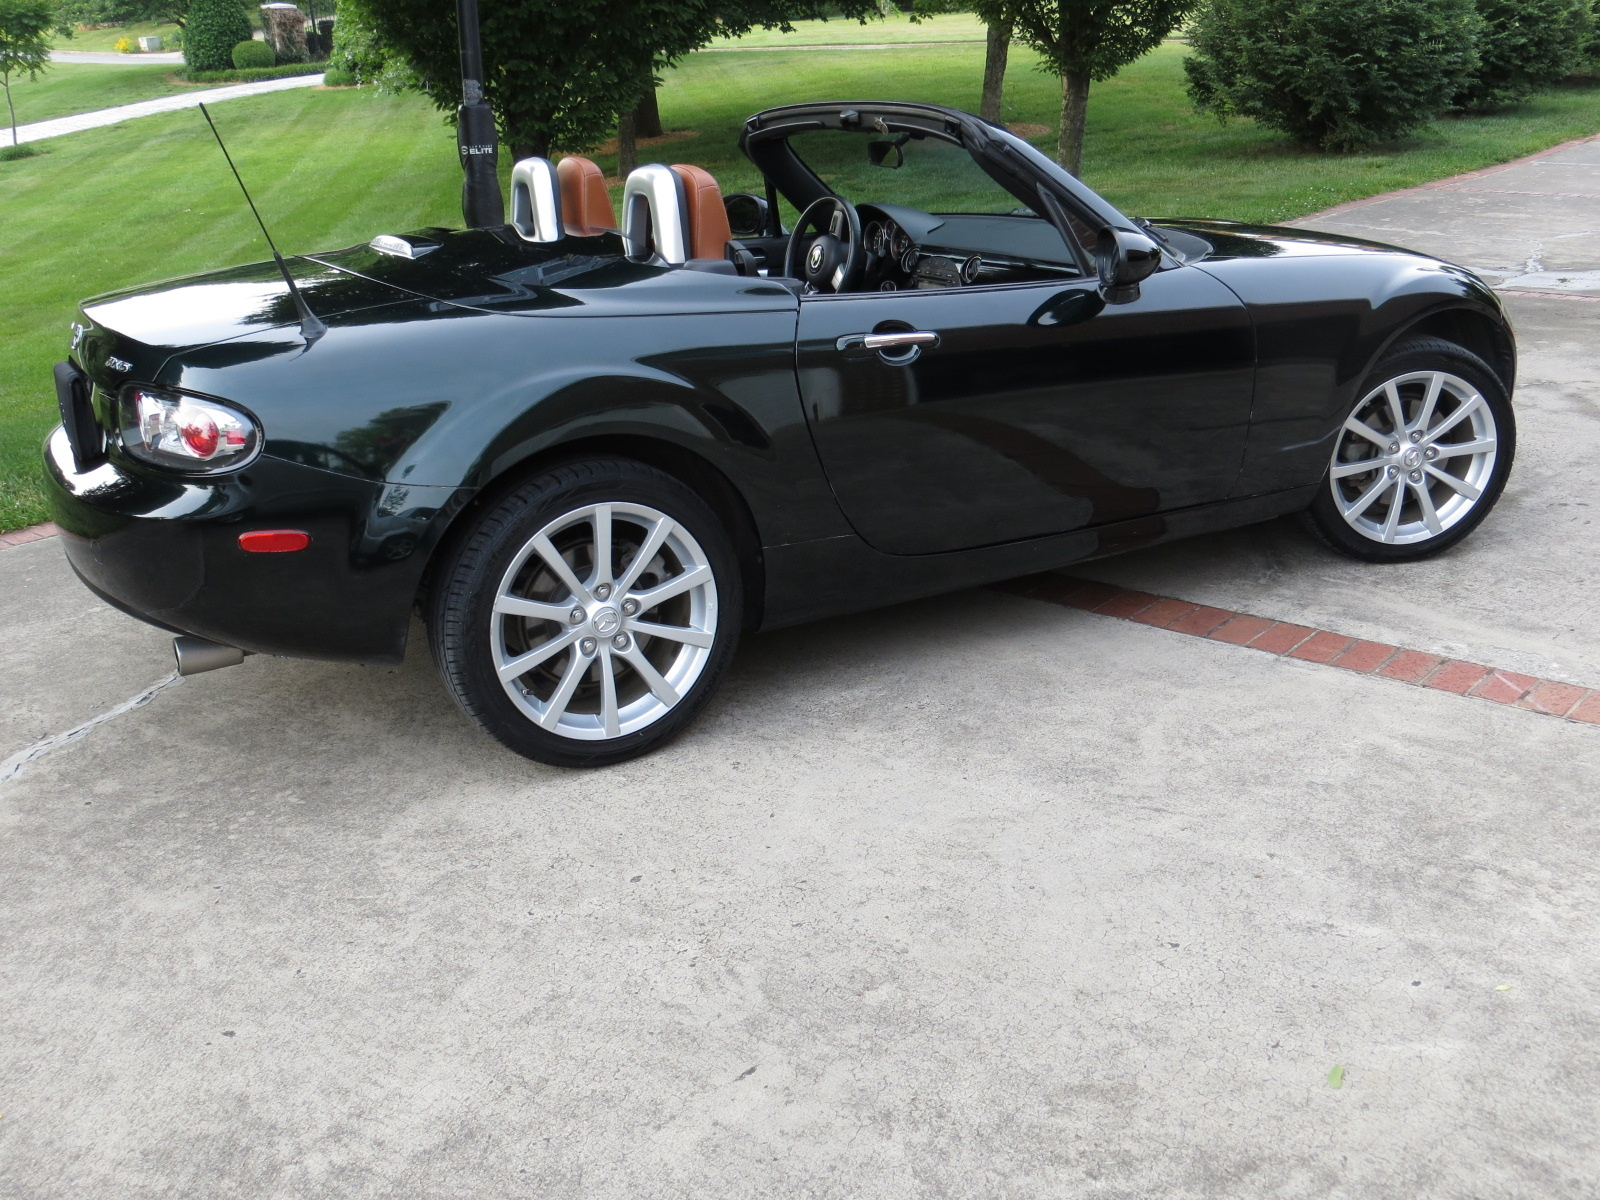 Mazda Mx Miata Grand Touring Hardtop Convertible Pic